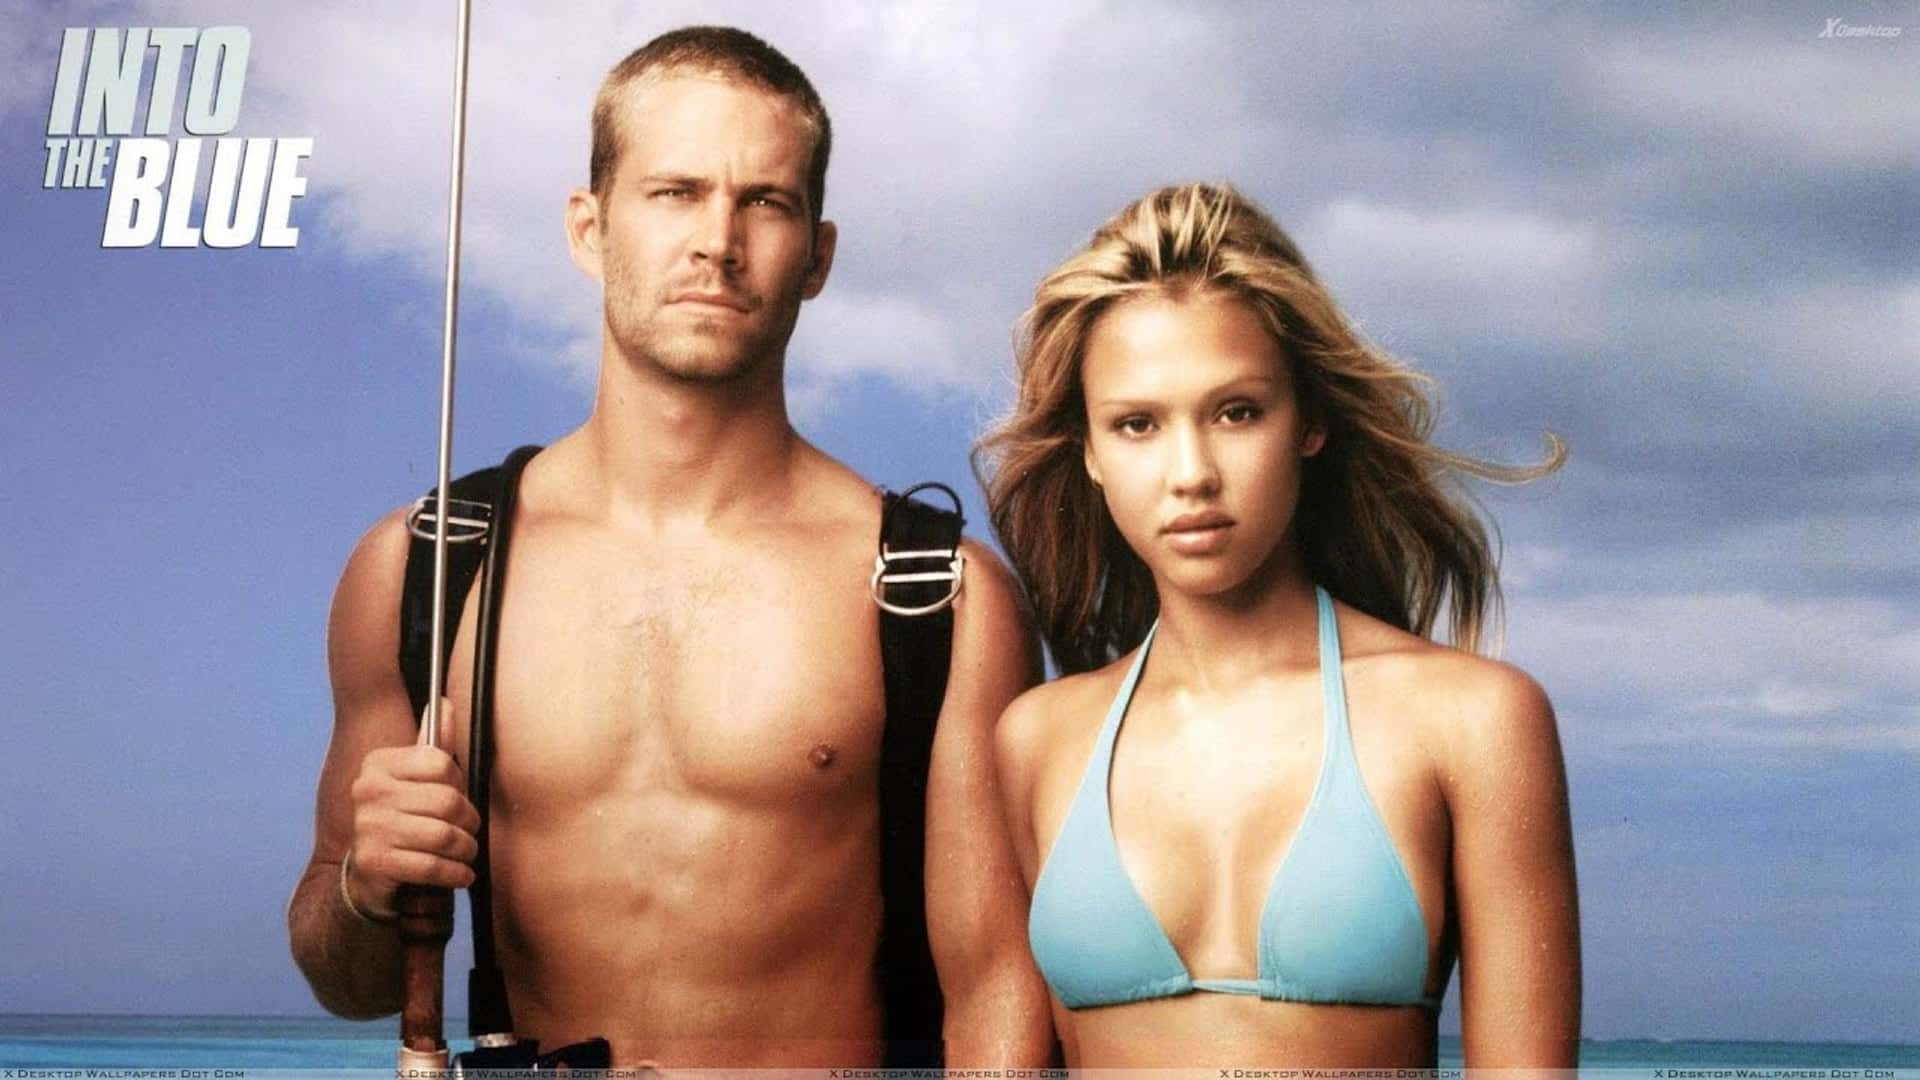 Into The Blue Movie